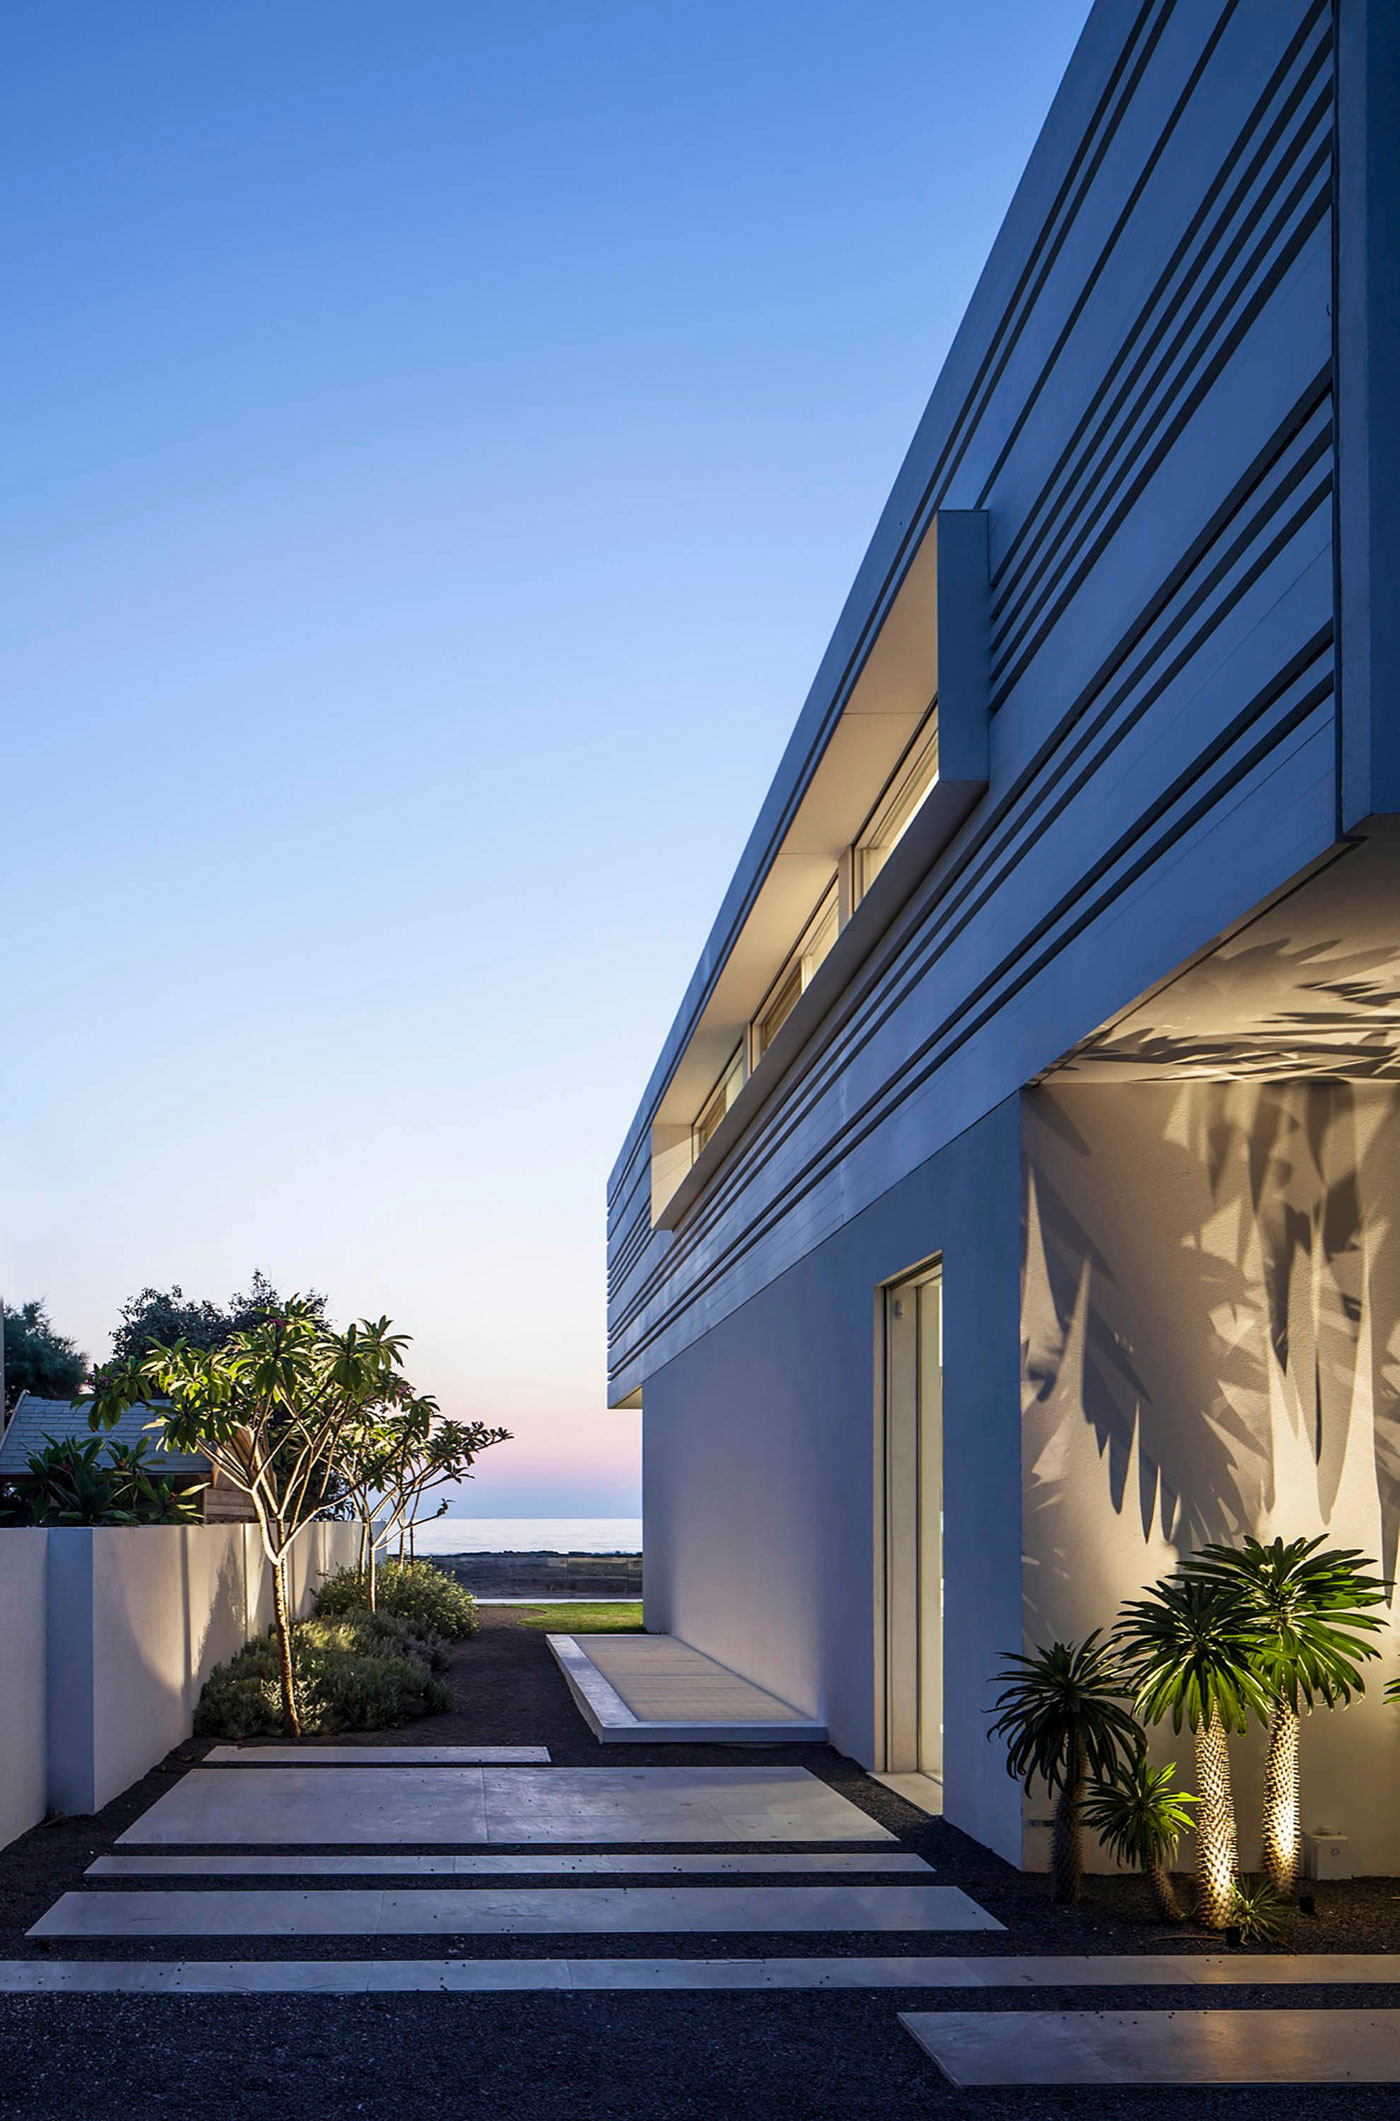 Luminous A House by the Sea home with Mediterranean Sea views by Pitsou Kedem Architects-24